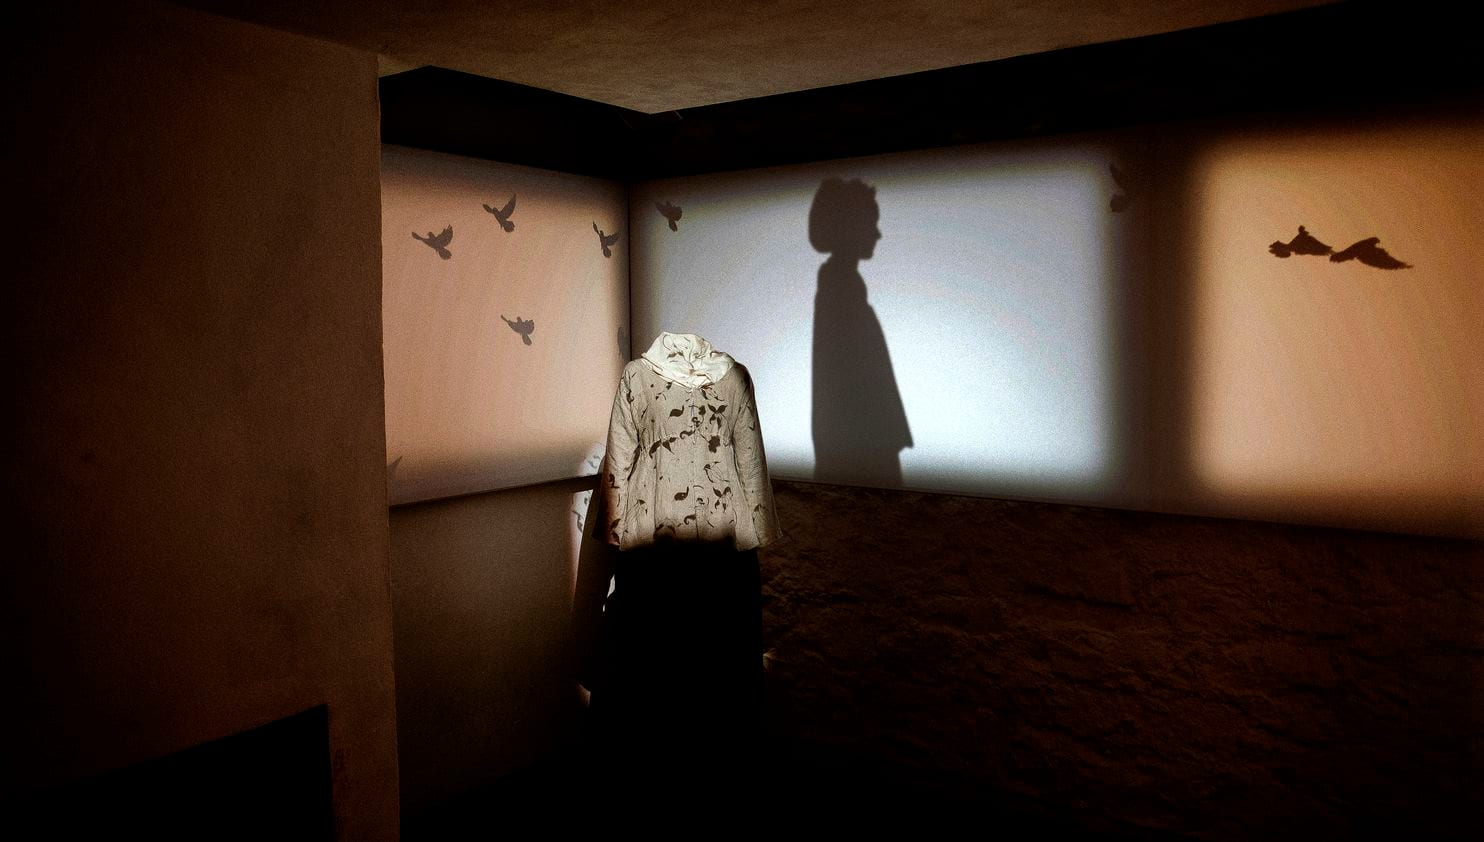 """The Life of Sally Hemings"" exhibit at Monticello debuted in 2018. (Eze Amos/For The Washington Post)"